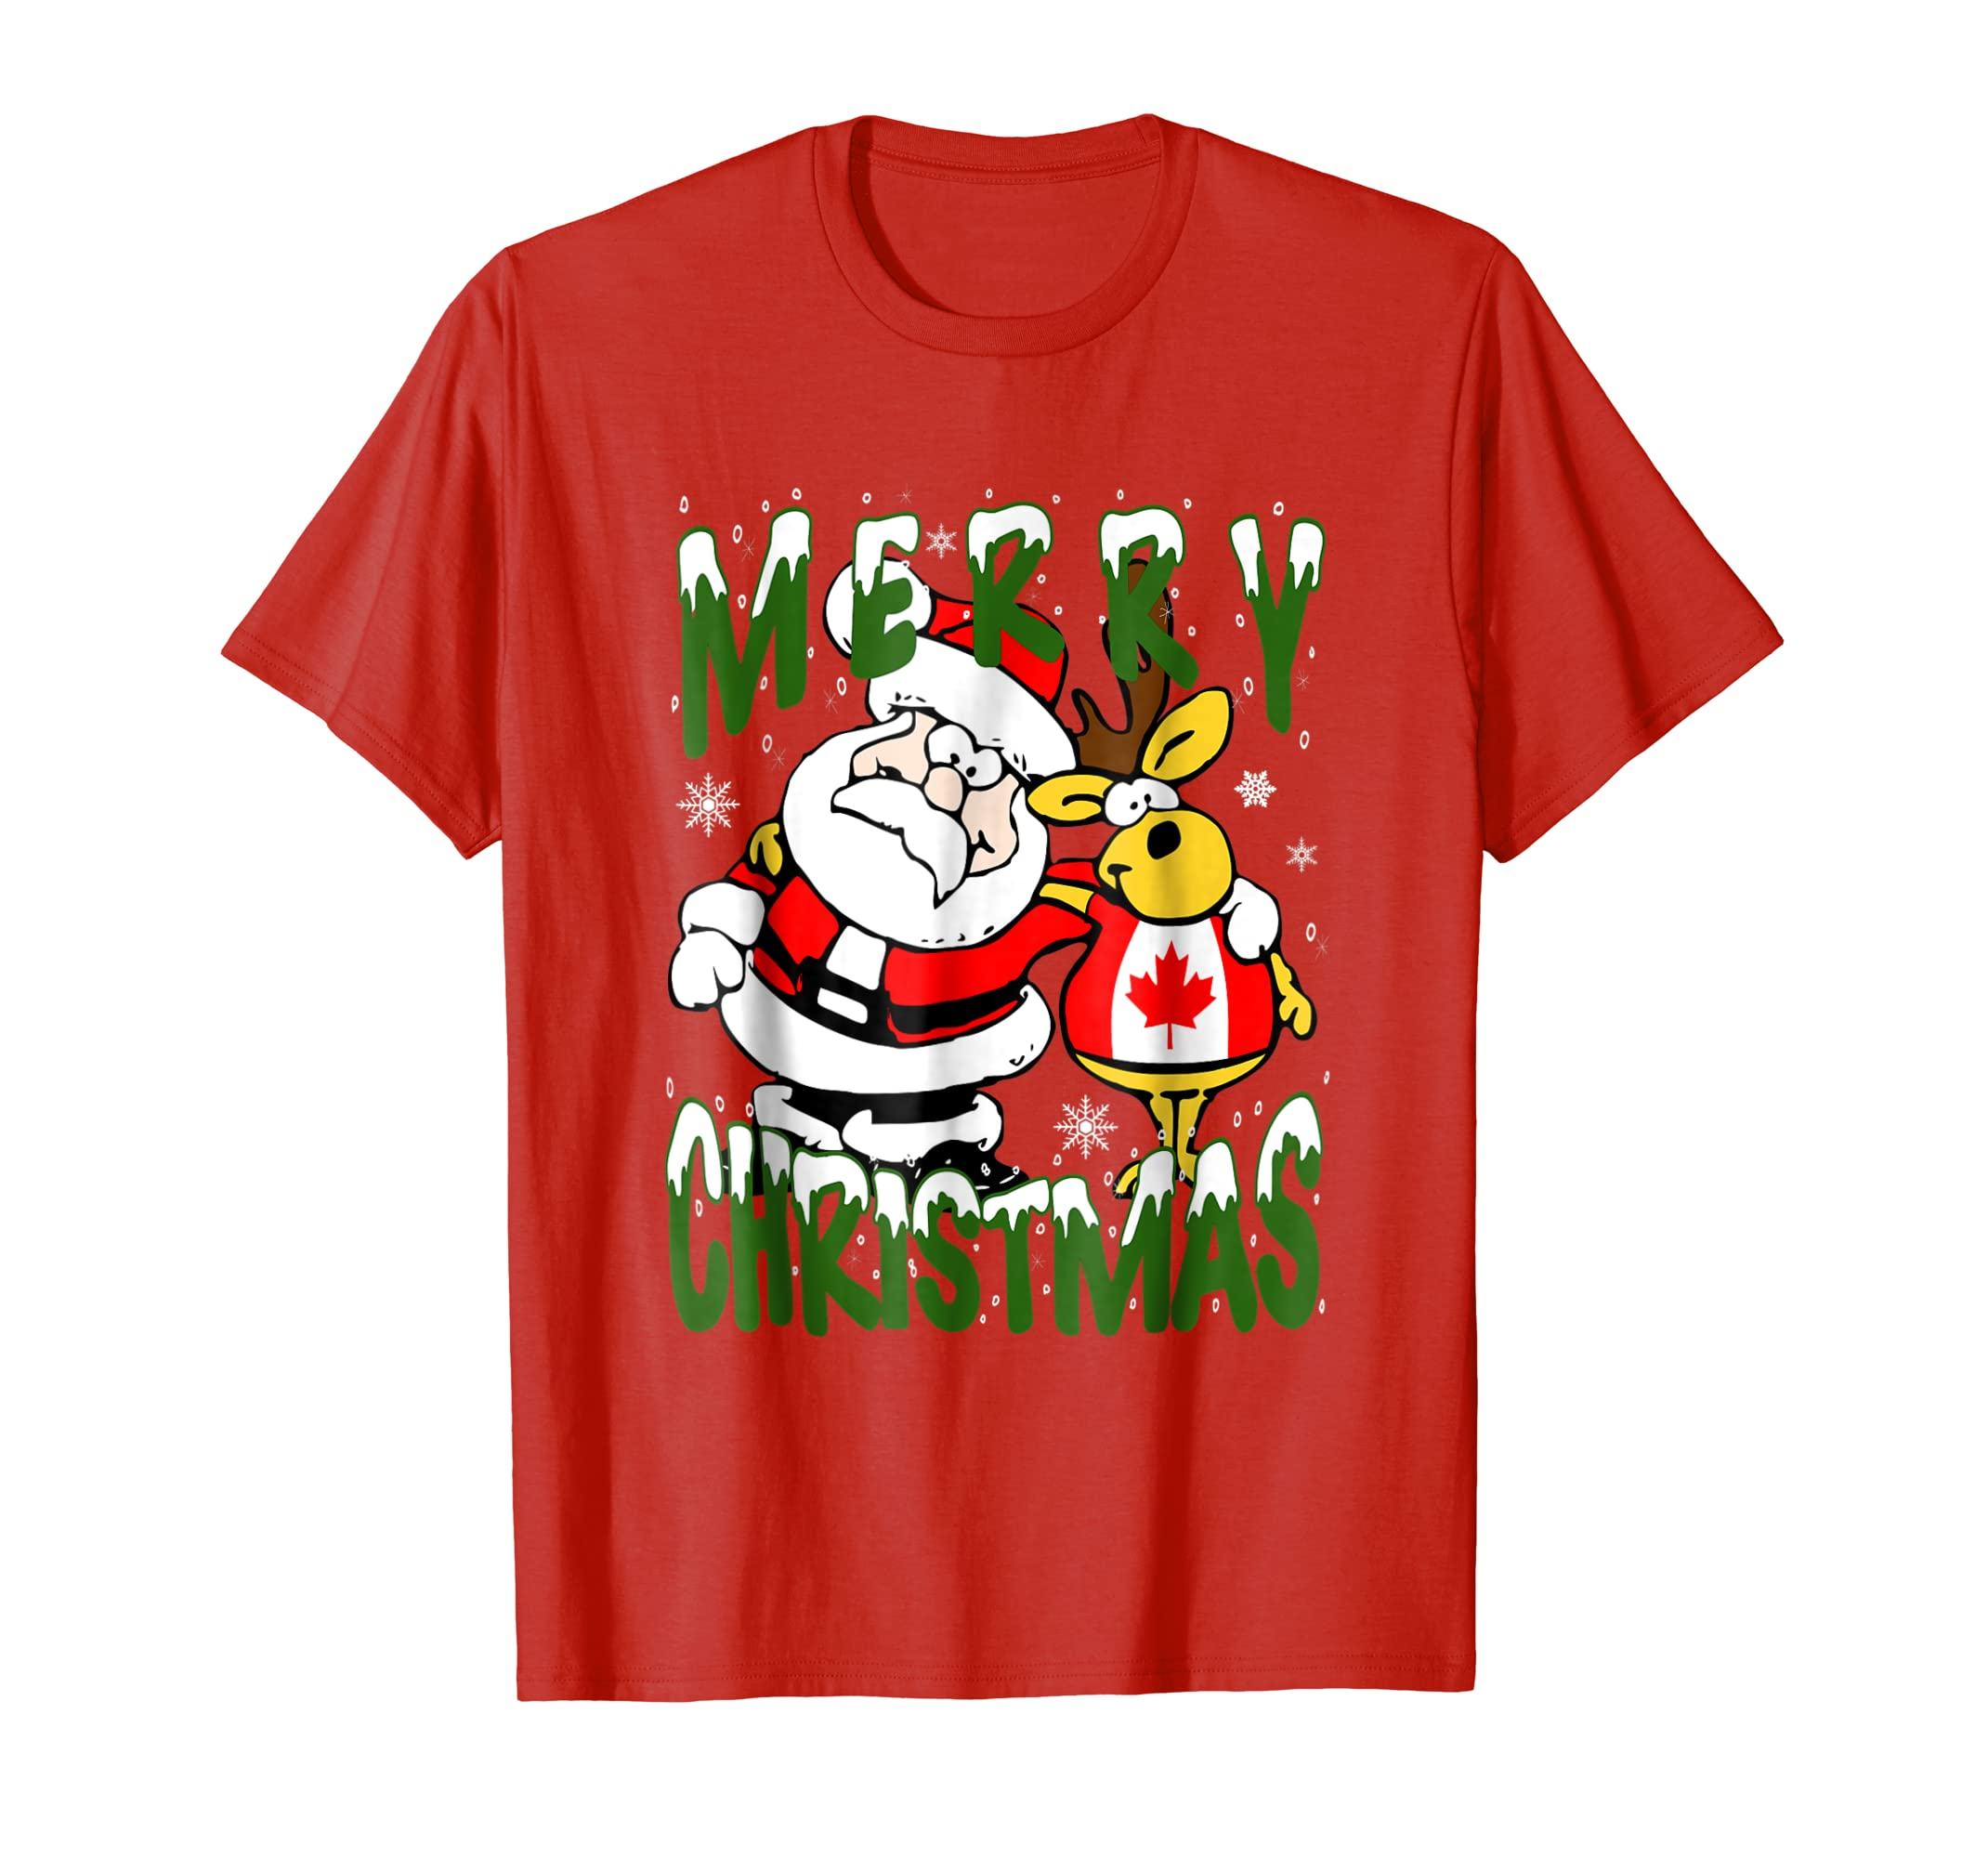 aad0ac1e Funny Christmas Shirts Canada « Alzheimer's Network of Oregon